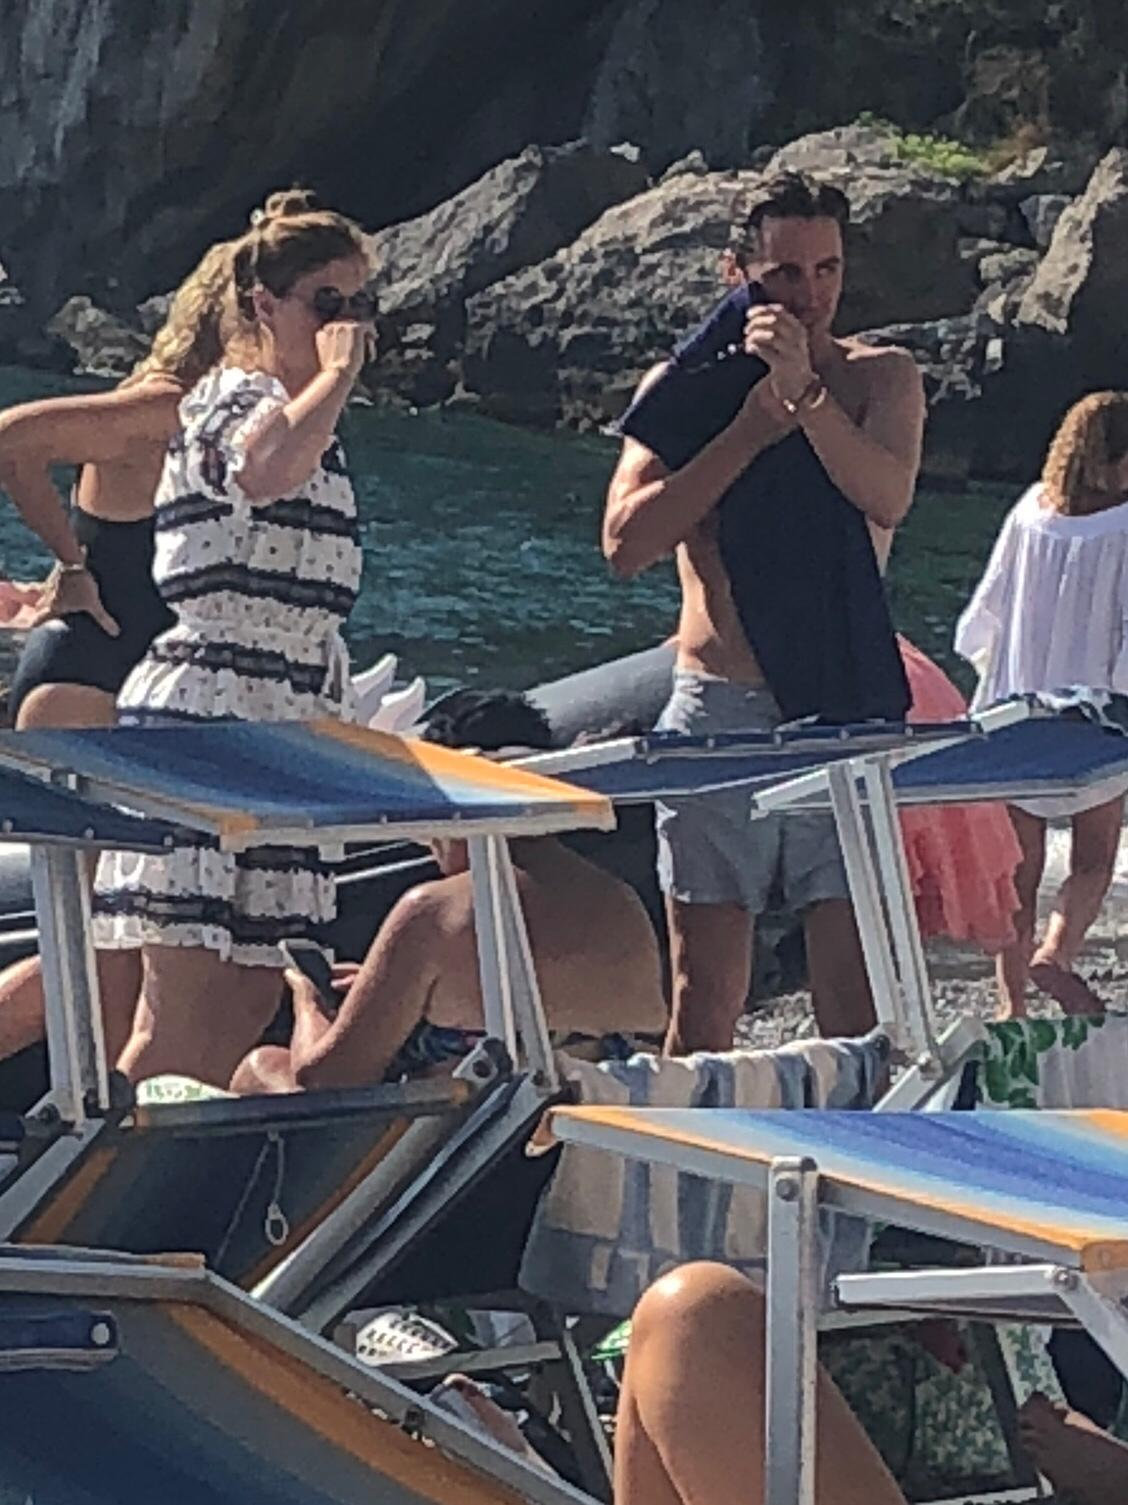 Rumours are swirling the couple could marry in Italy [Photo: SWNS]